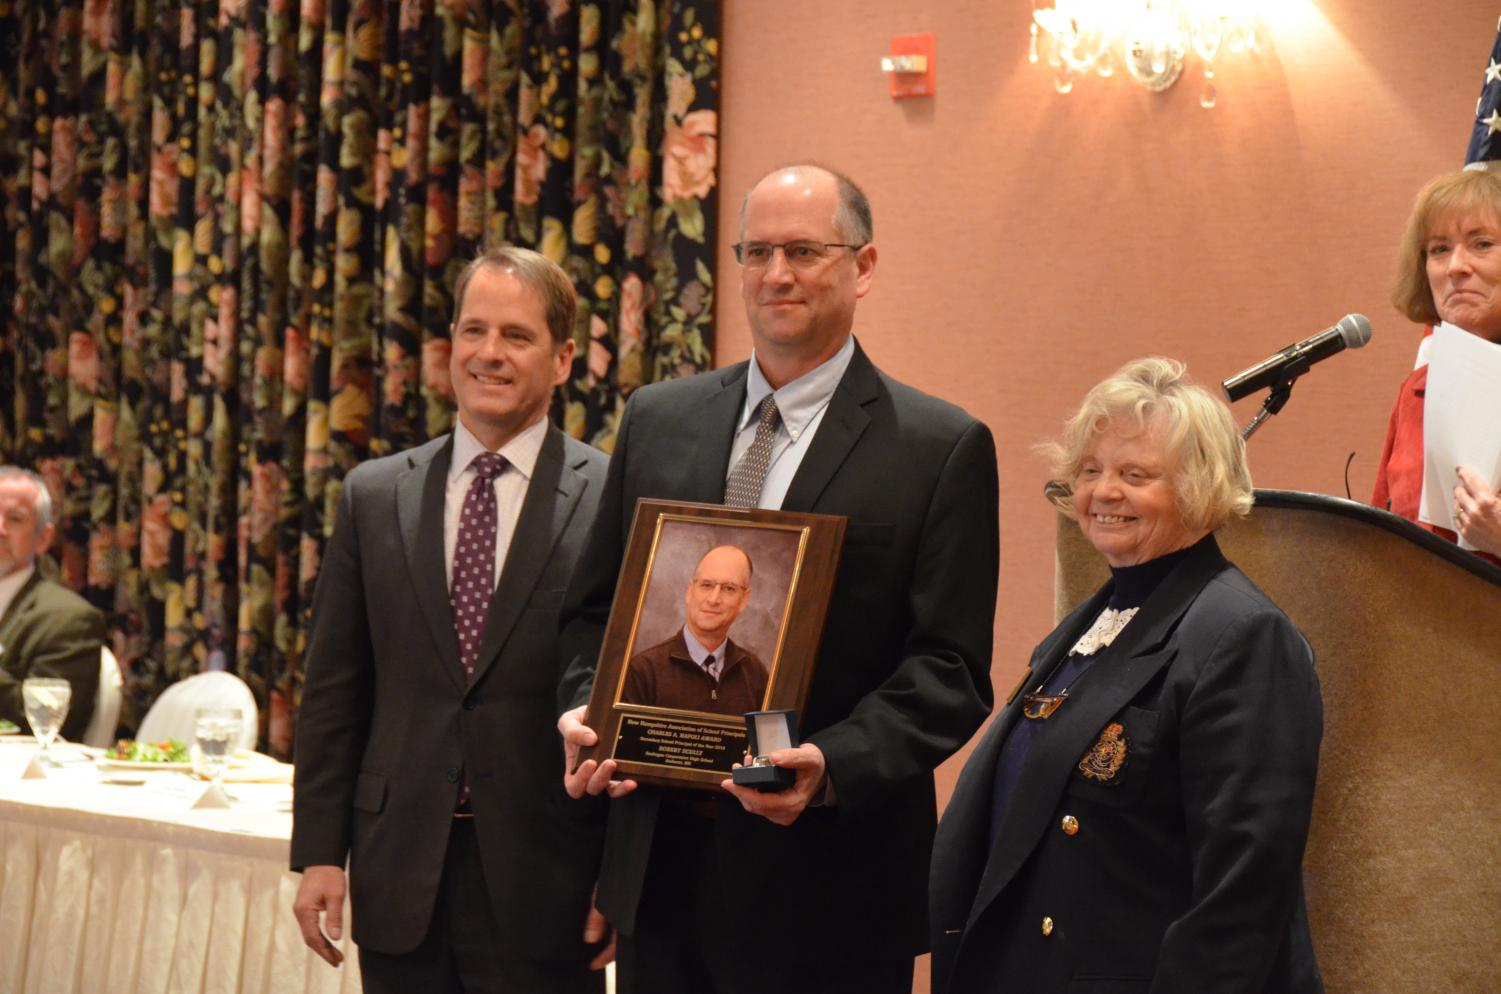 N.H.+Education+Commissioner+Frank+Edelblut+%28left%29+and+NHASP+Executive+Director+Peggy+McAllister+%28right%29+gave+Rob+Scully+his+award.